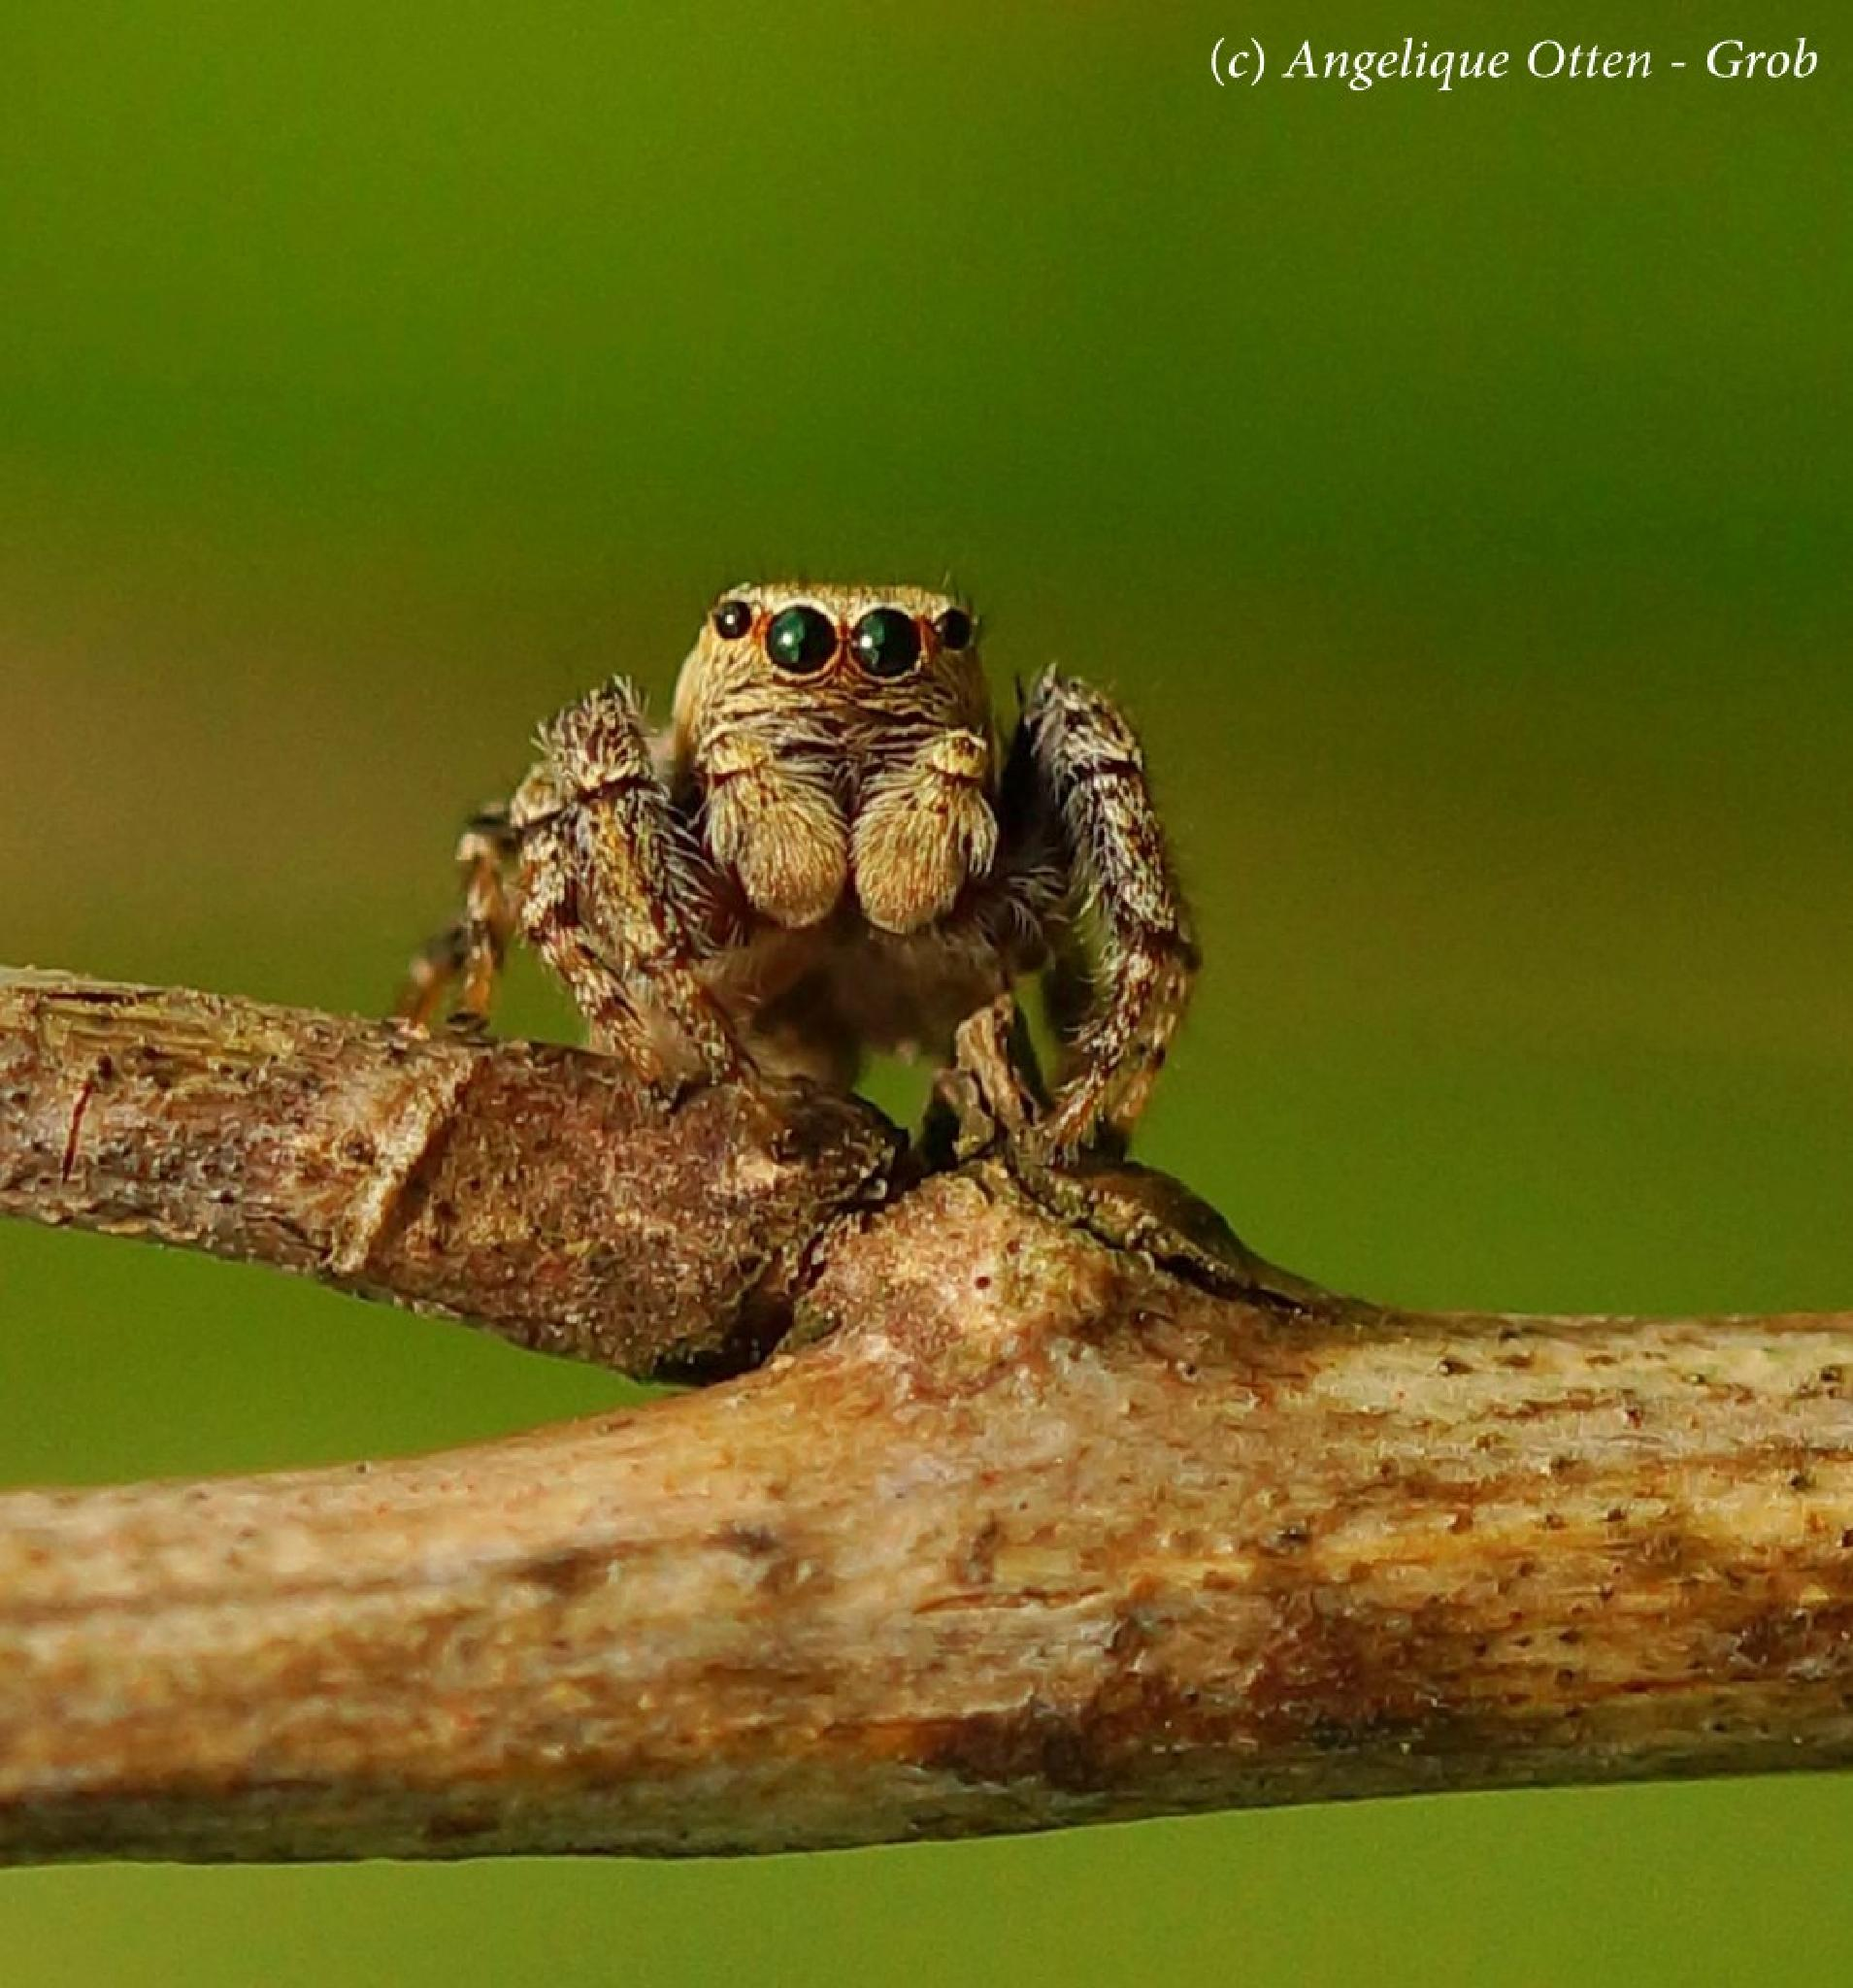 Hello little one... Jumping spider by Angelique Otten - Grob